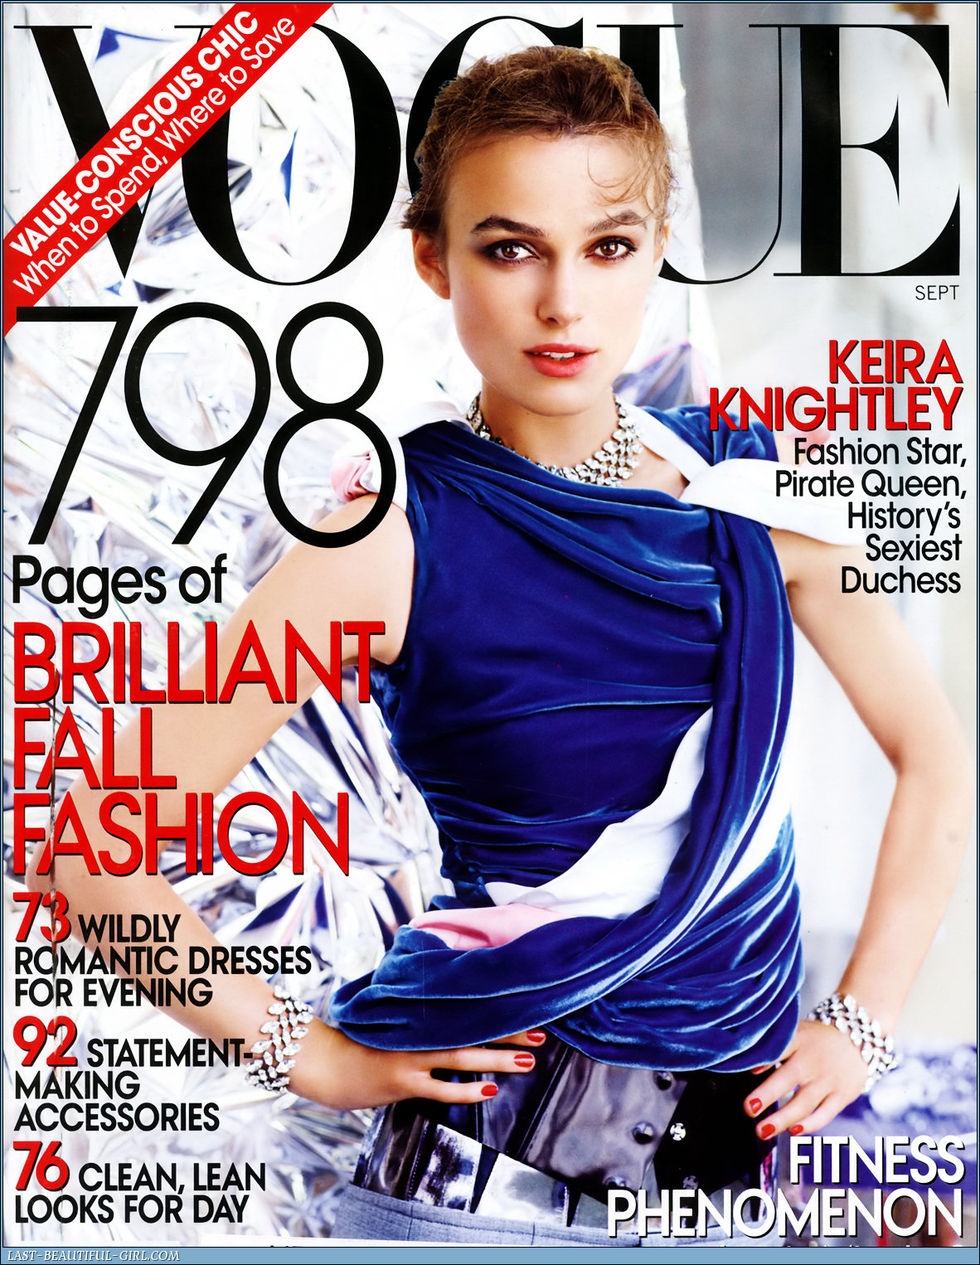 keira-knightley-vogue-magazine-september-2008-01